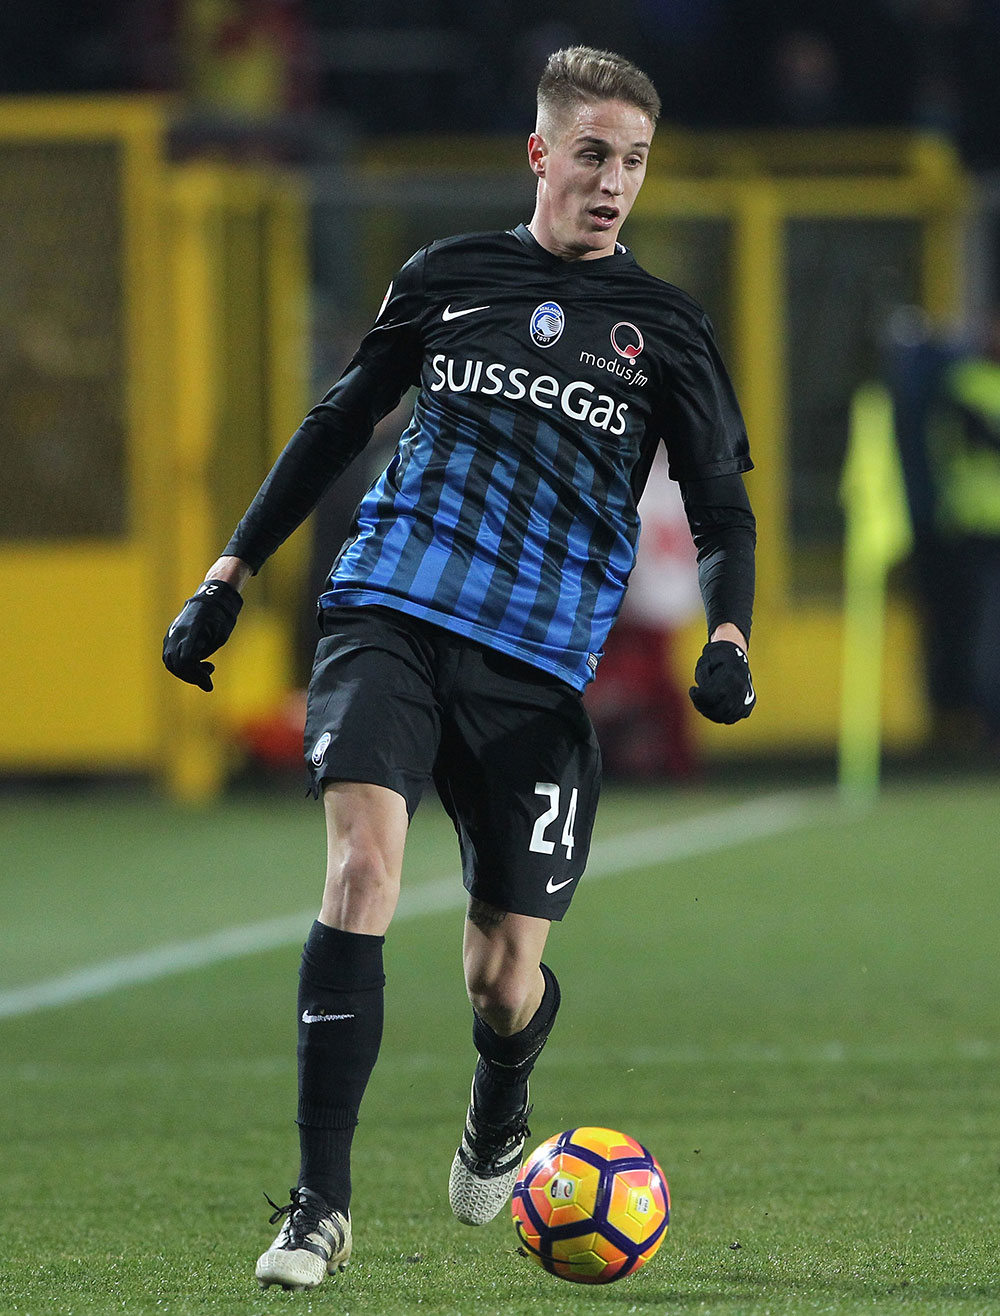 Andrea Conti during Atalanta-Sampdoria at Stadio Atleti Azzurri d'Italia on January 22, 2017. (Photo by Marco Luzzani/Getty Images)